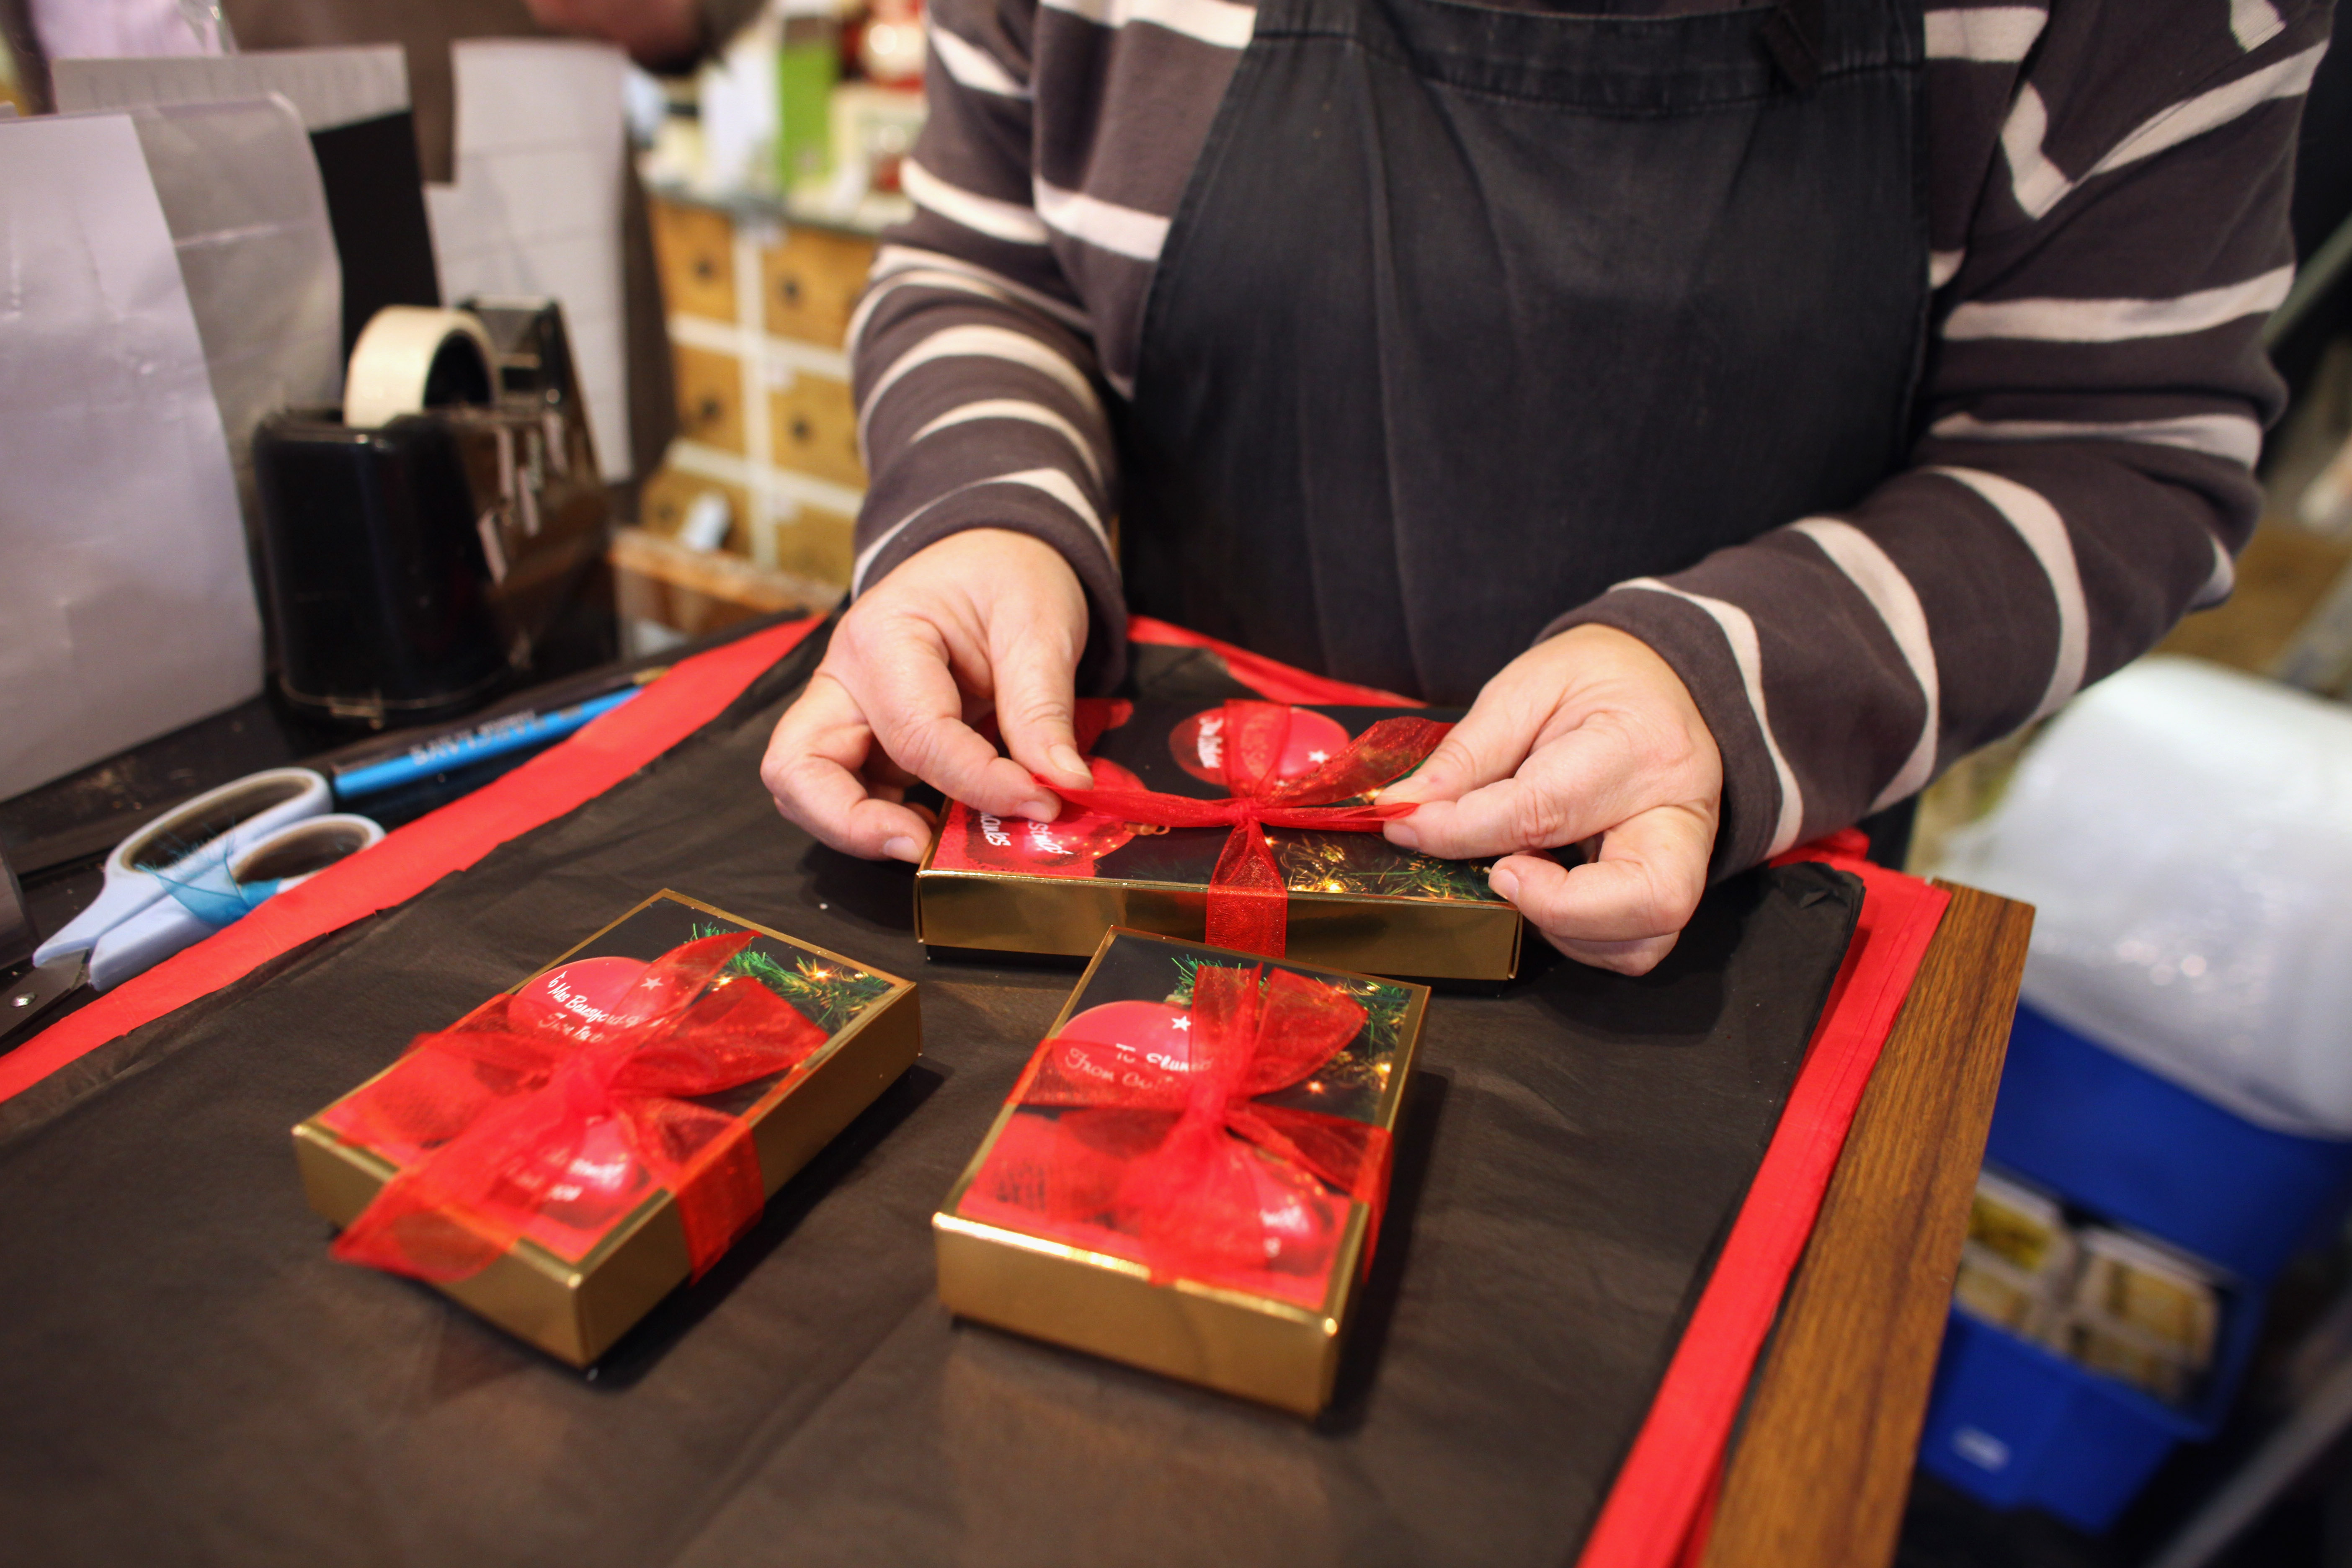 5 unconventional places to shop for your holiday gifts